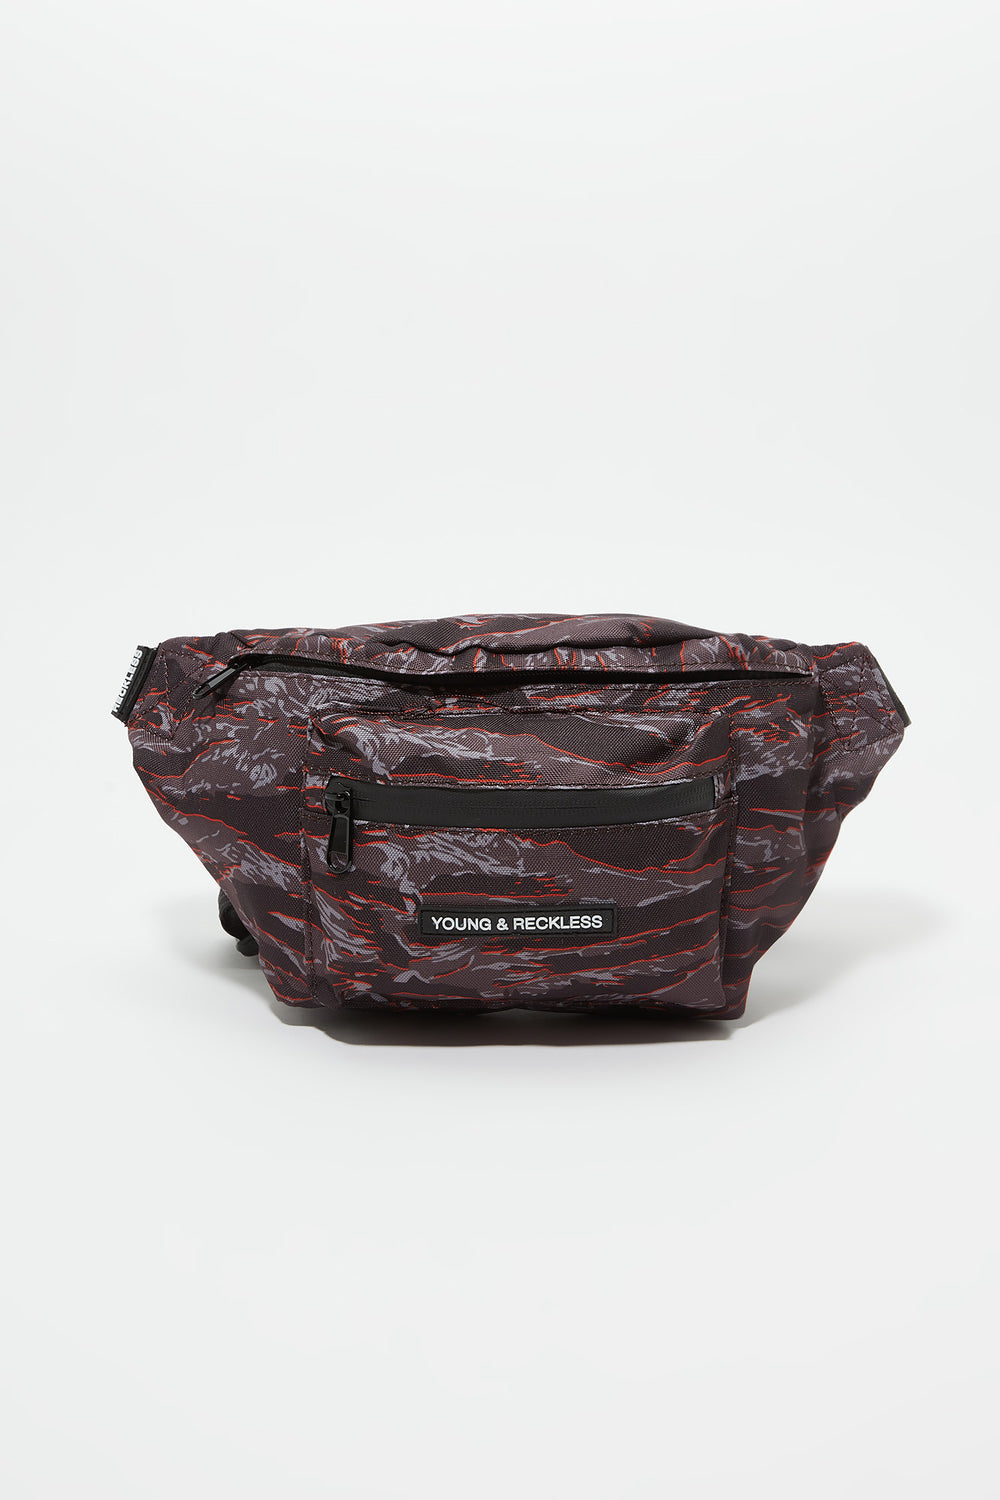 Sac Banane Camouflage Tigré Young & Reckless Carreaux